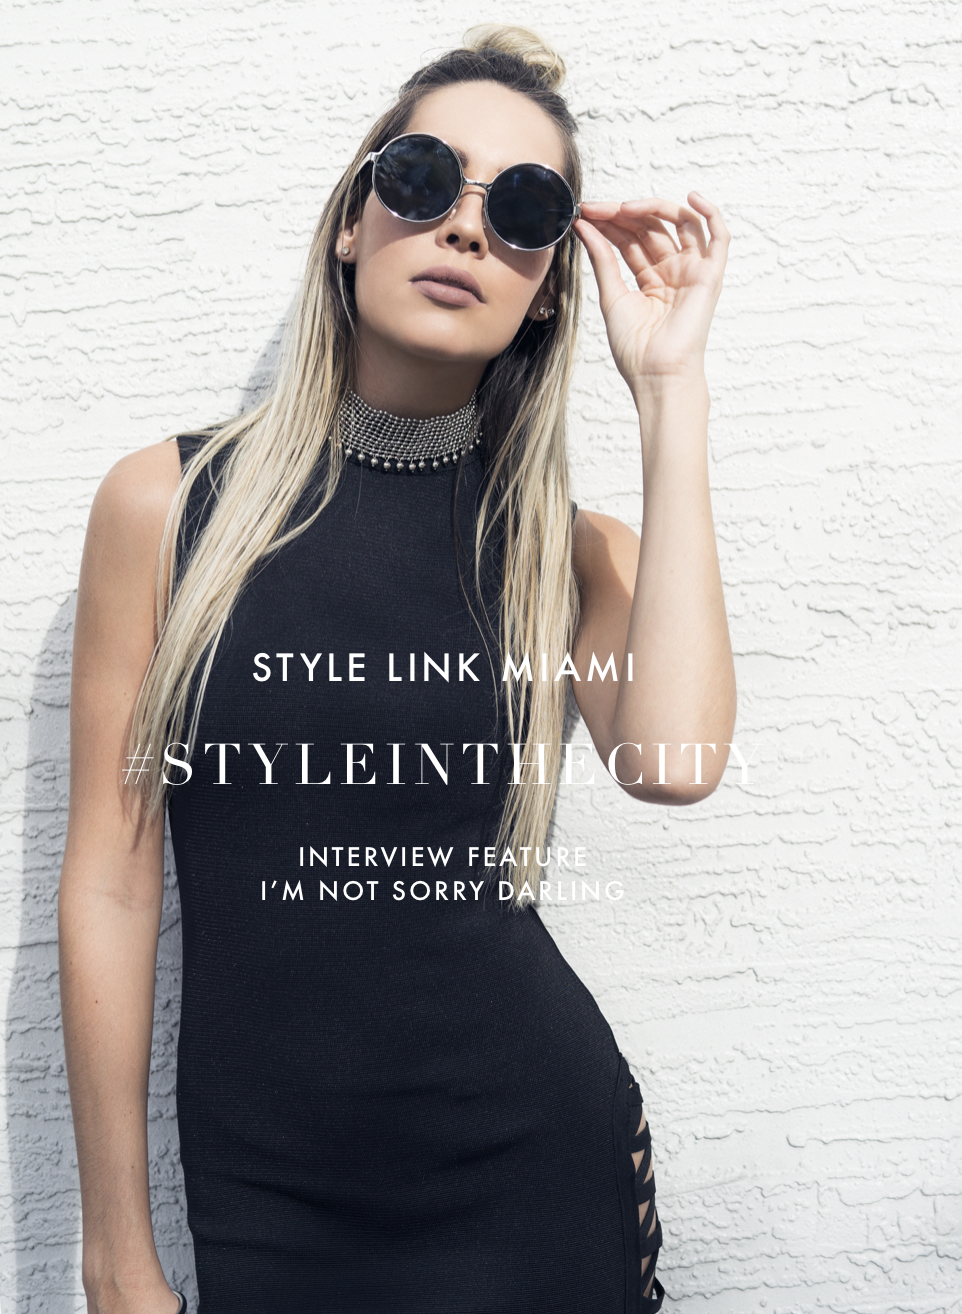 miami-fashion-blogger-im-not-sorry-darling-black-bandage-dress-style-link-miami-illy-perez